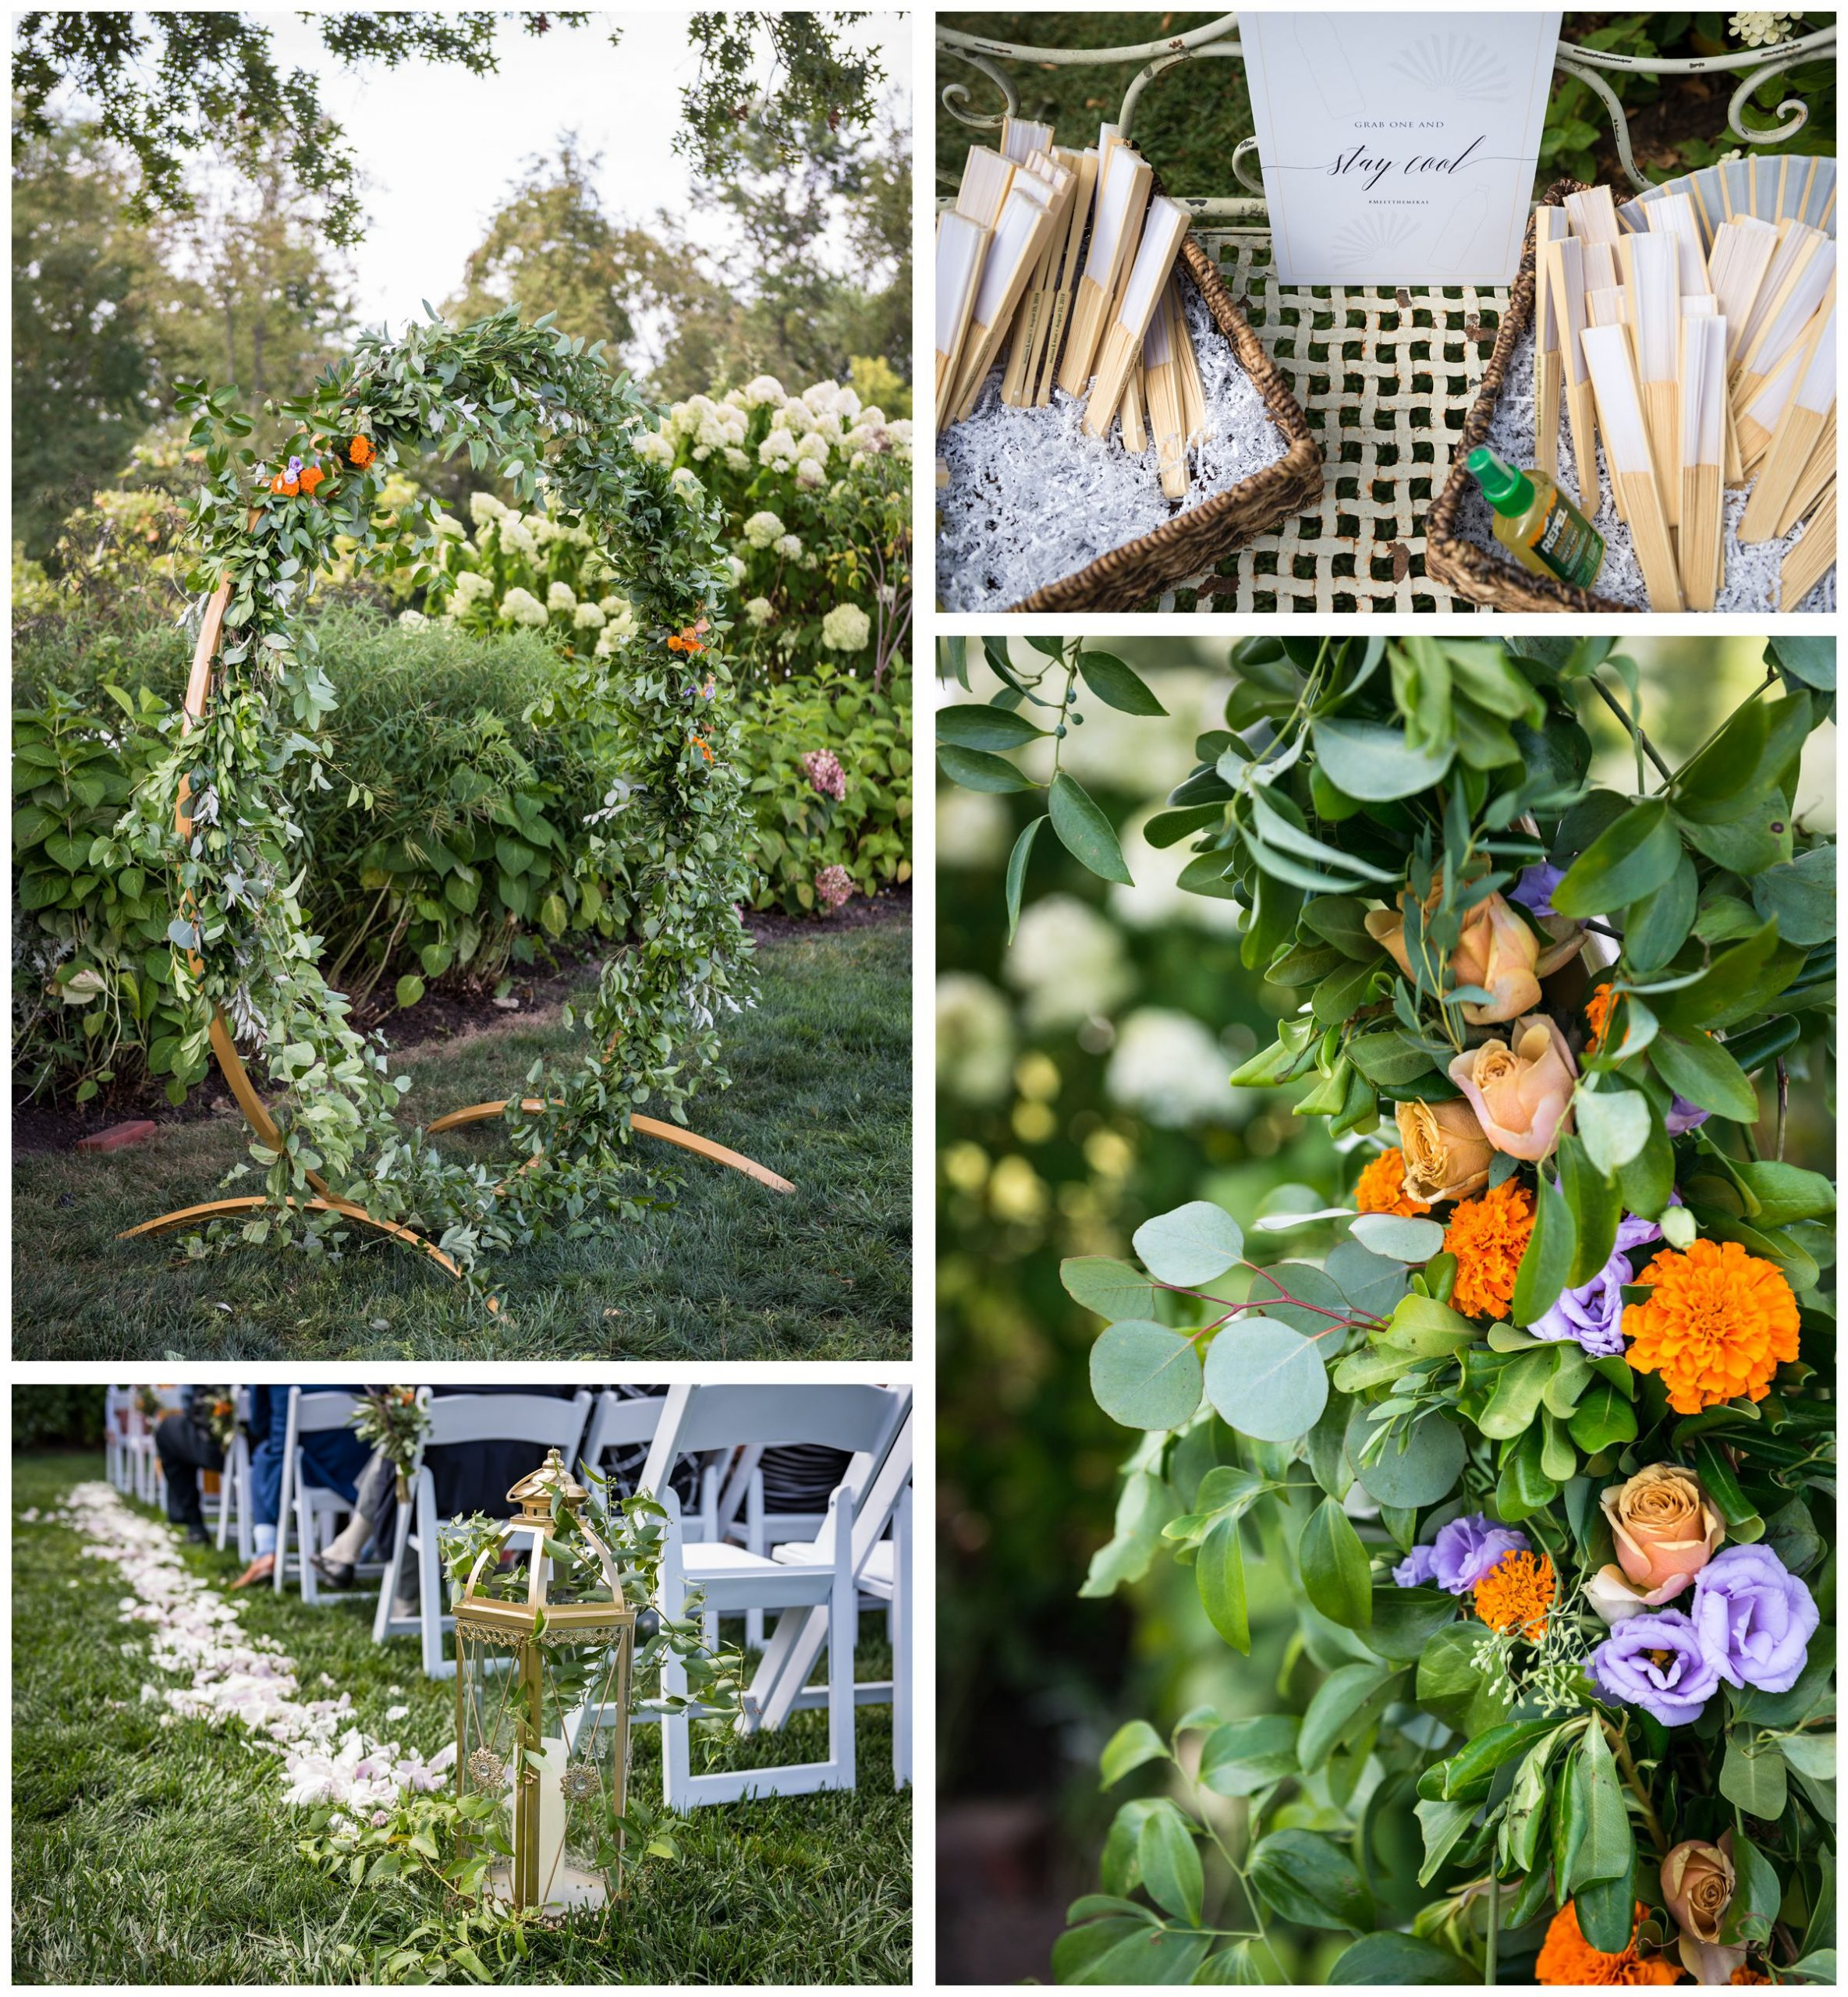 Indian wedding flower marigolds on floral moongate arch with greenery, gold lanterns, orange and purple flowers, and fans at summer wedding at Jorgensen Farms